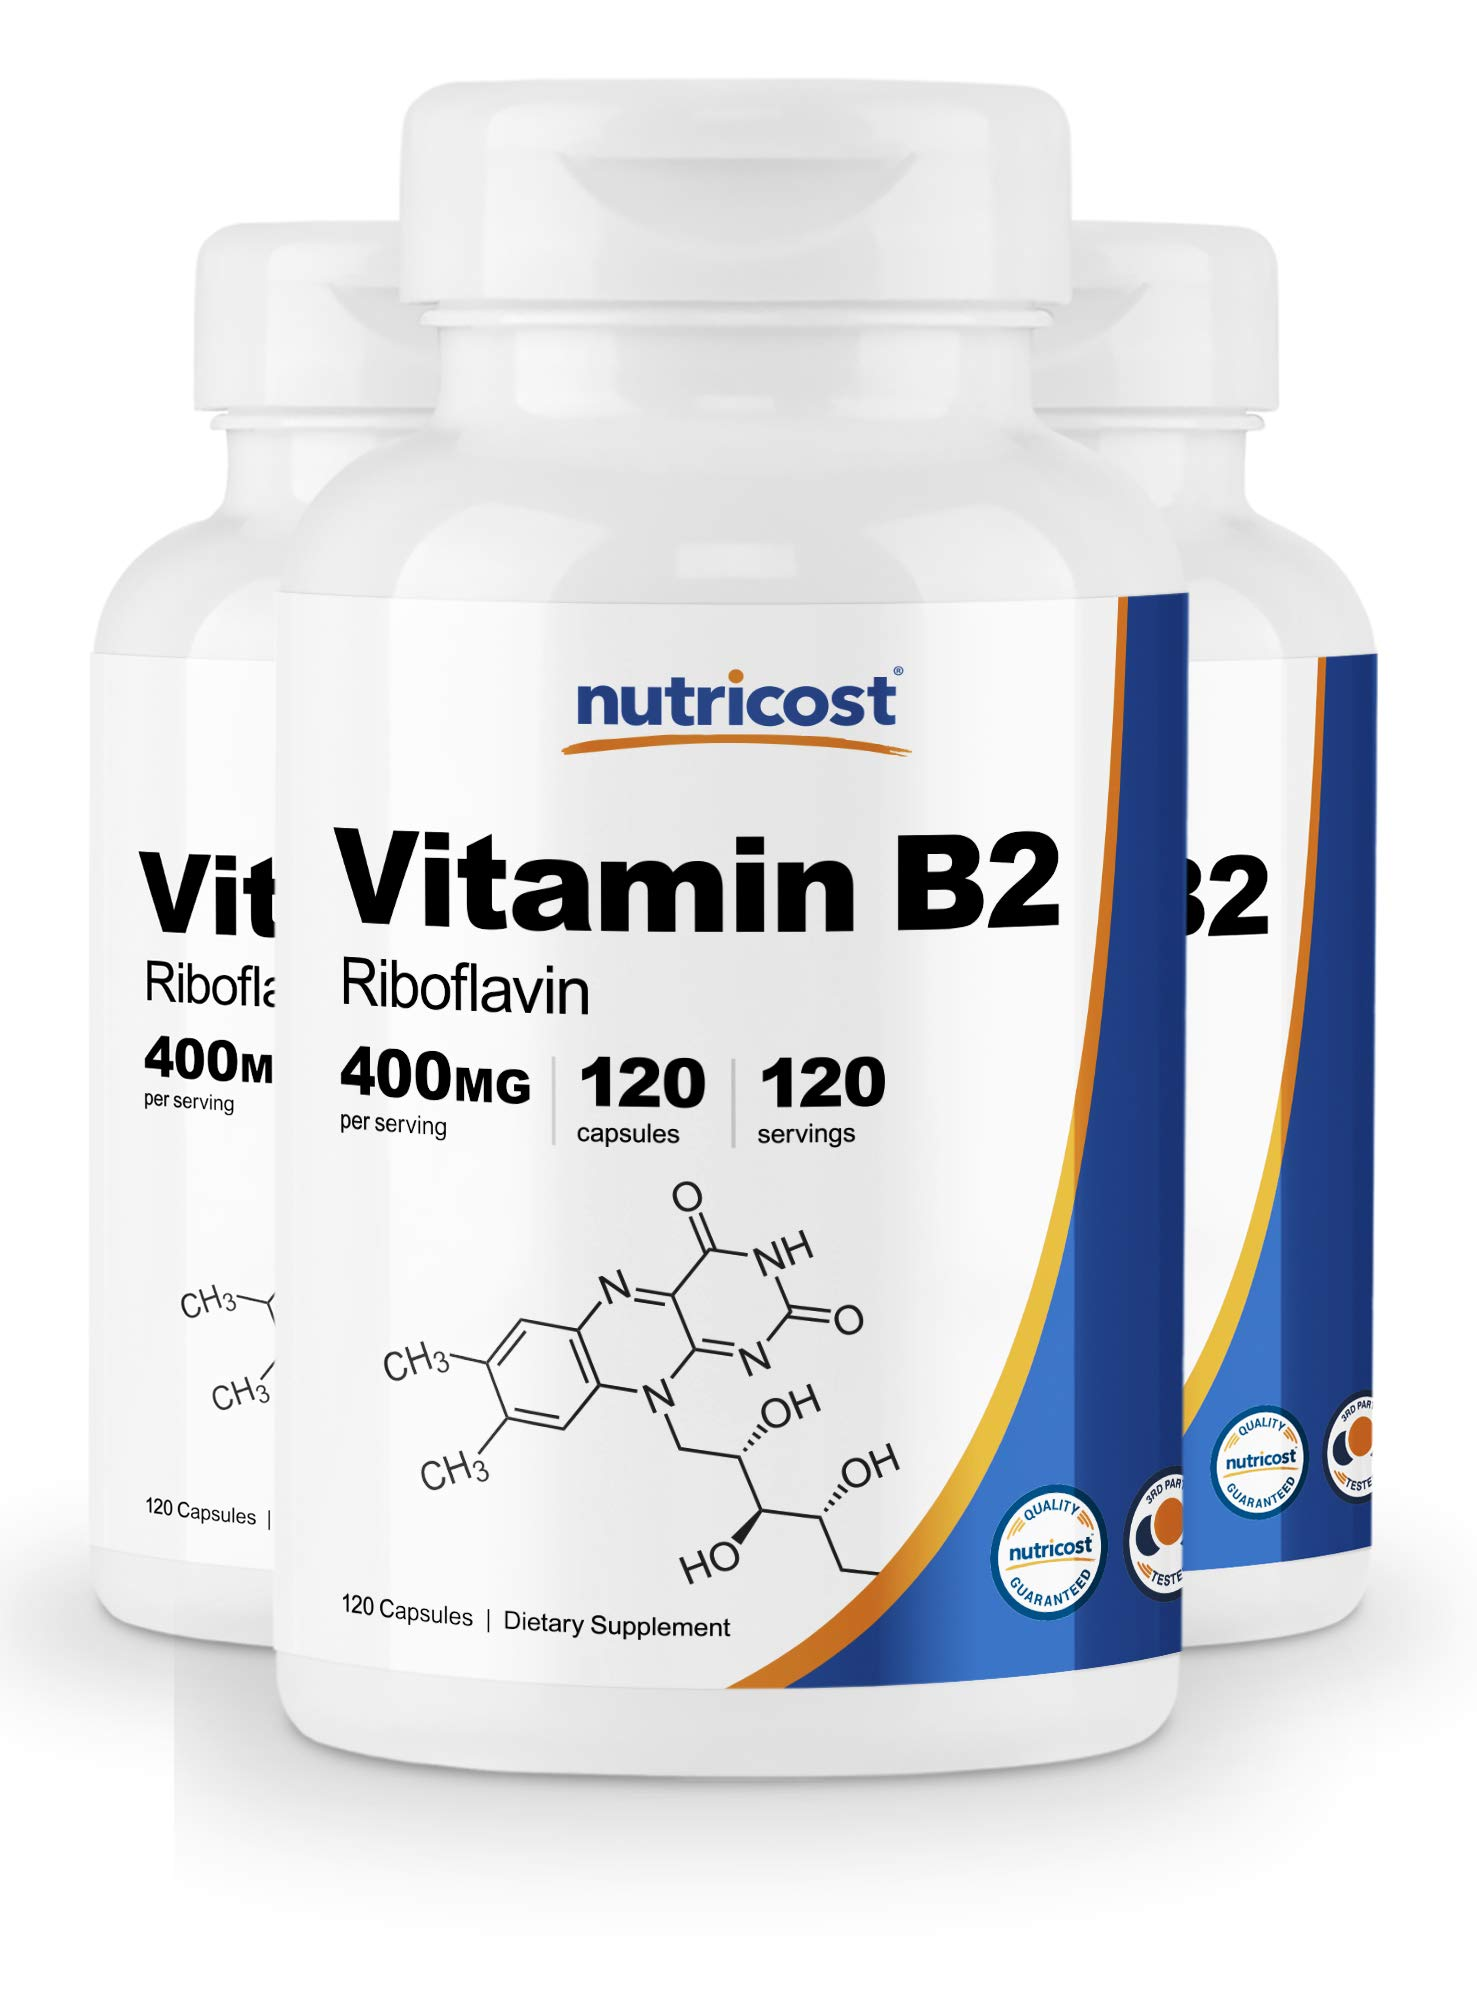 Nutricost Vitamin B2 (Riboflavin) 400mg, 120 Capsules (3 Bottles) by Nutricost